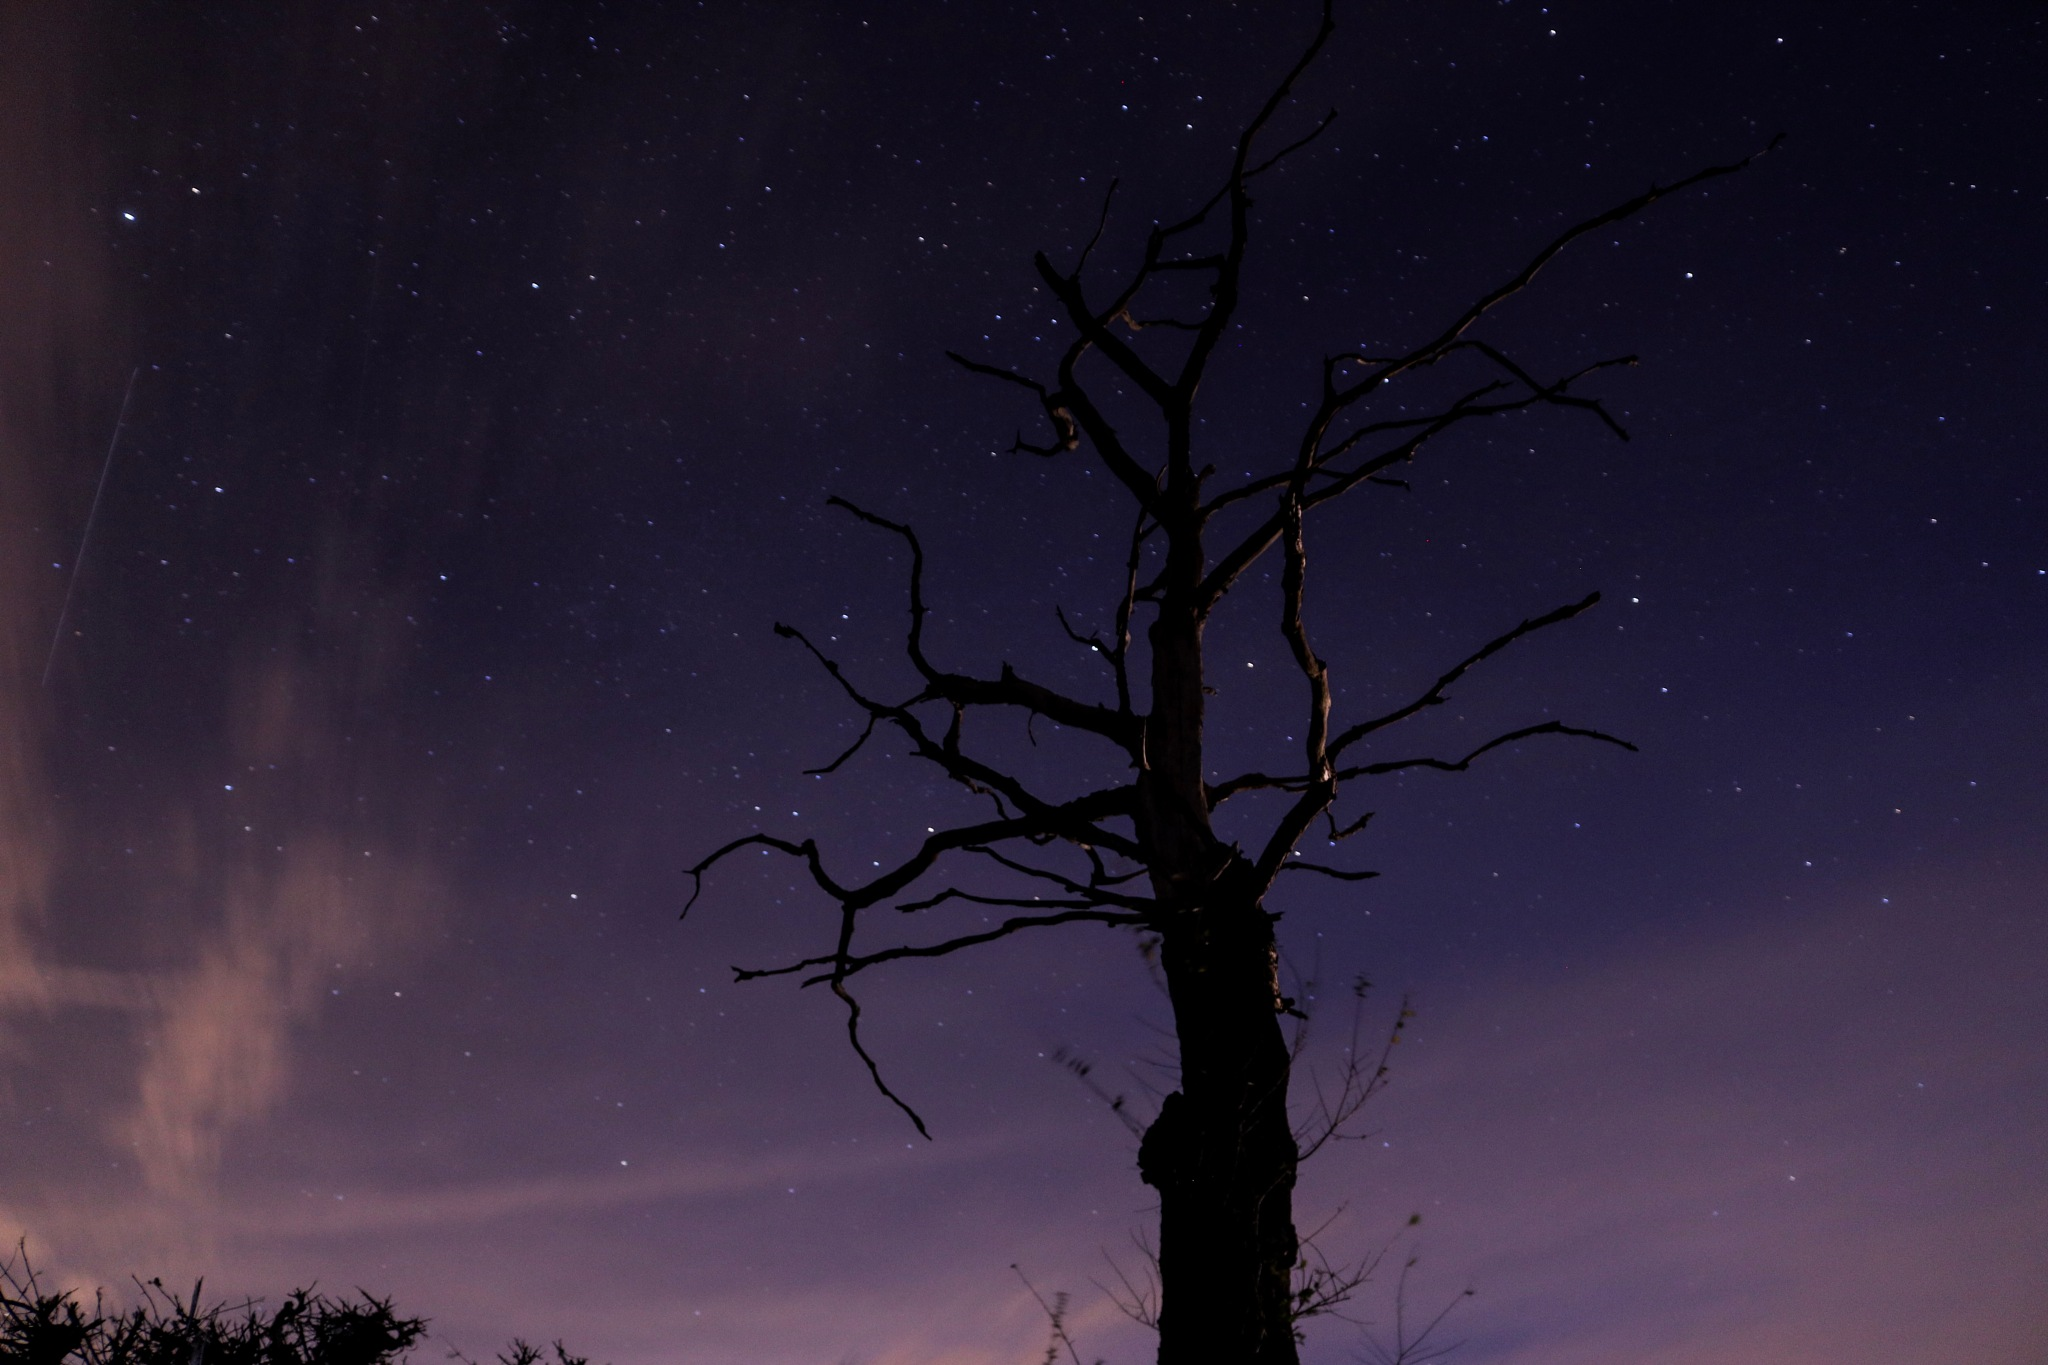 Starry Nights and Purple Skies by Poppy Cornell